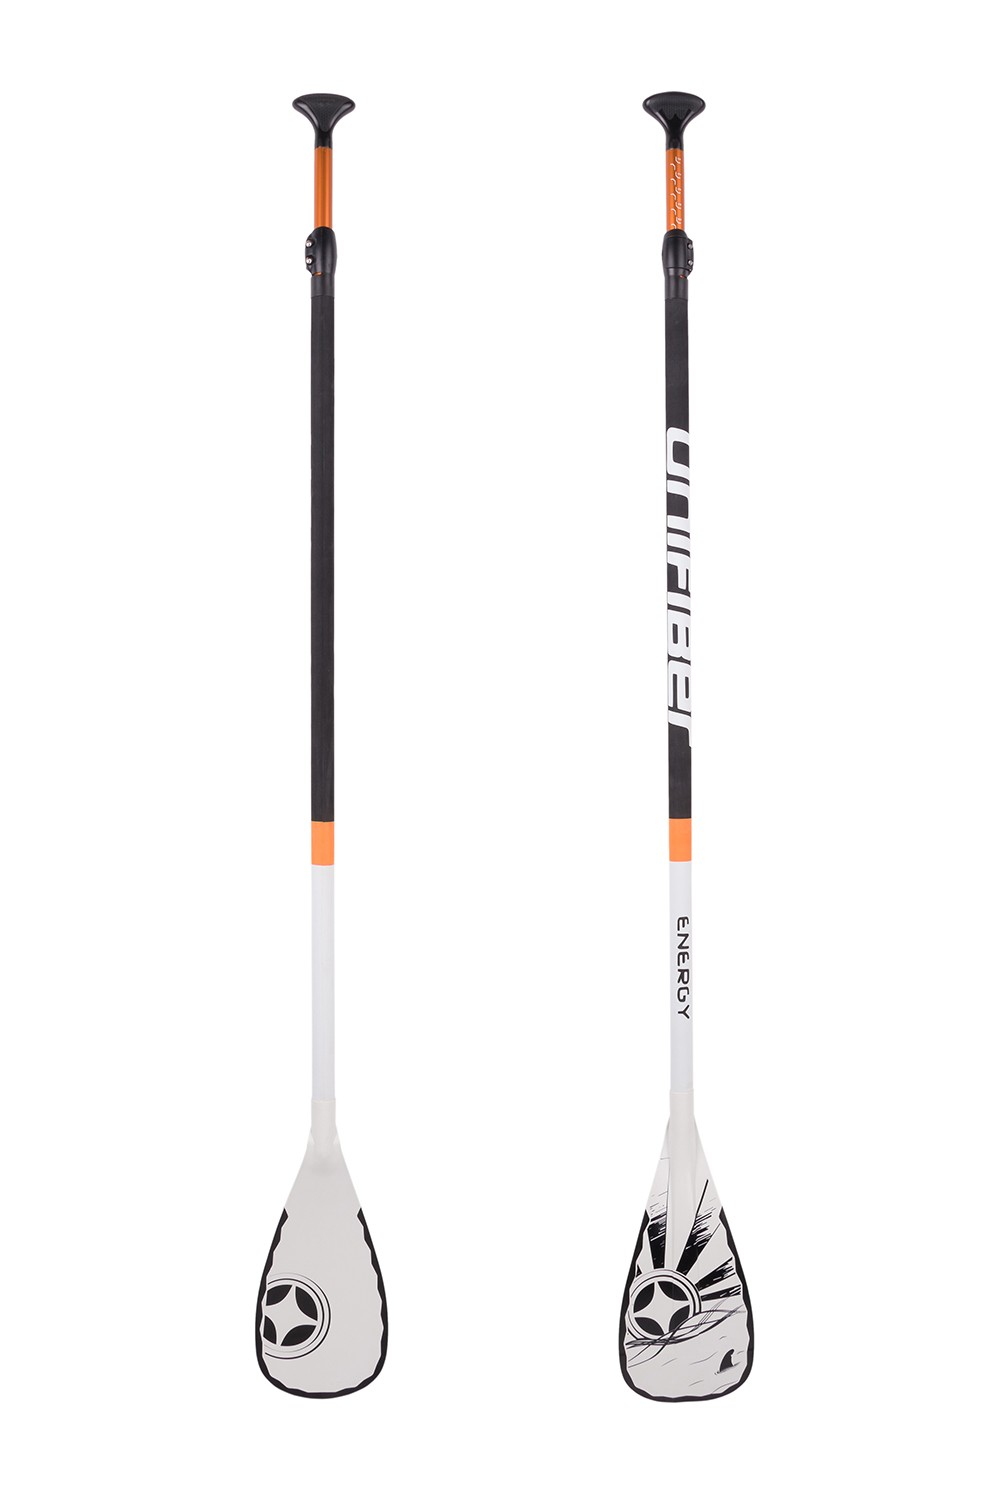 Aluminium Sup T6 Paddle 2 PC Energy 170 - 220